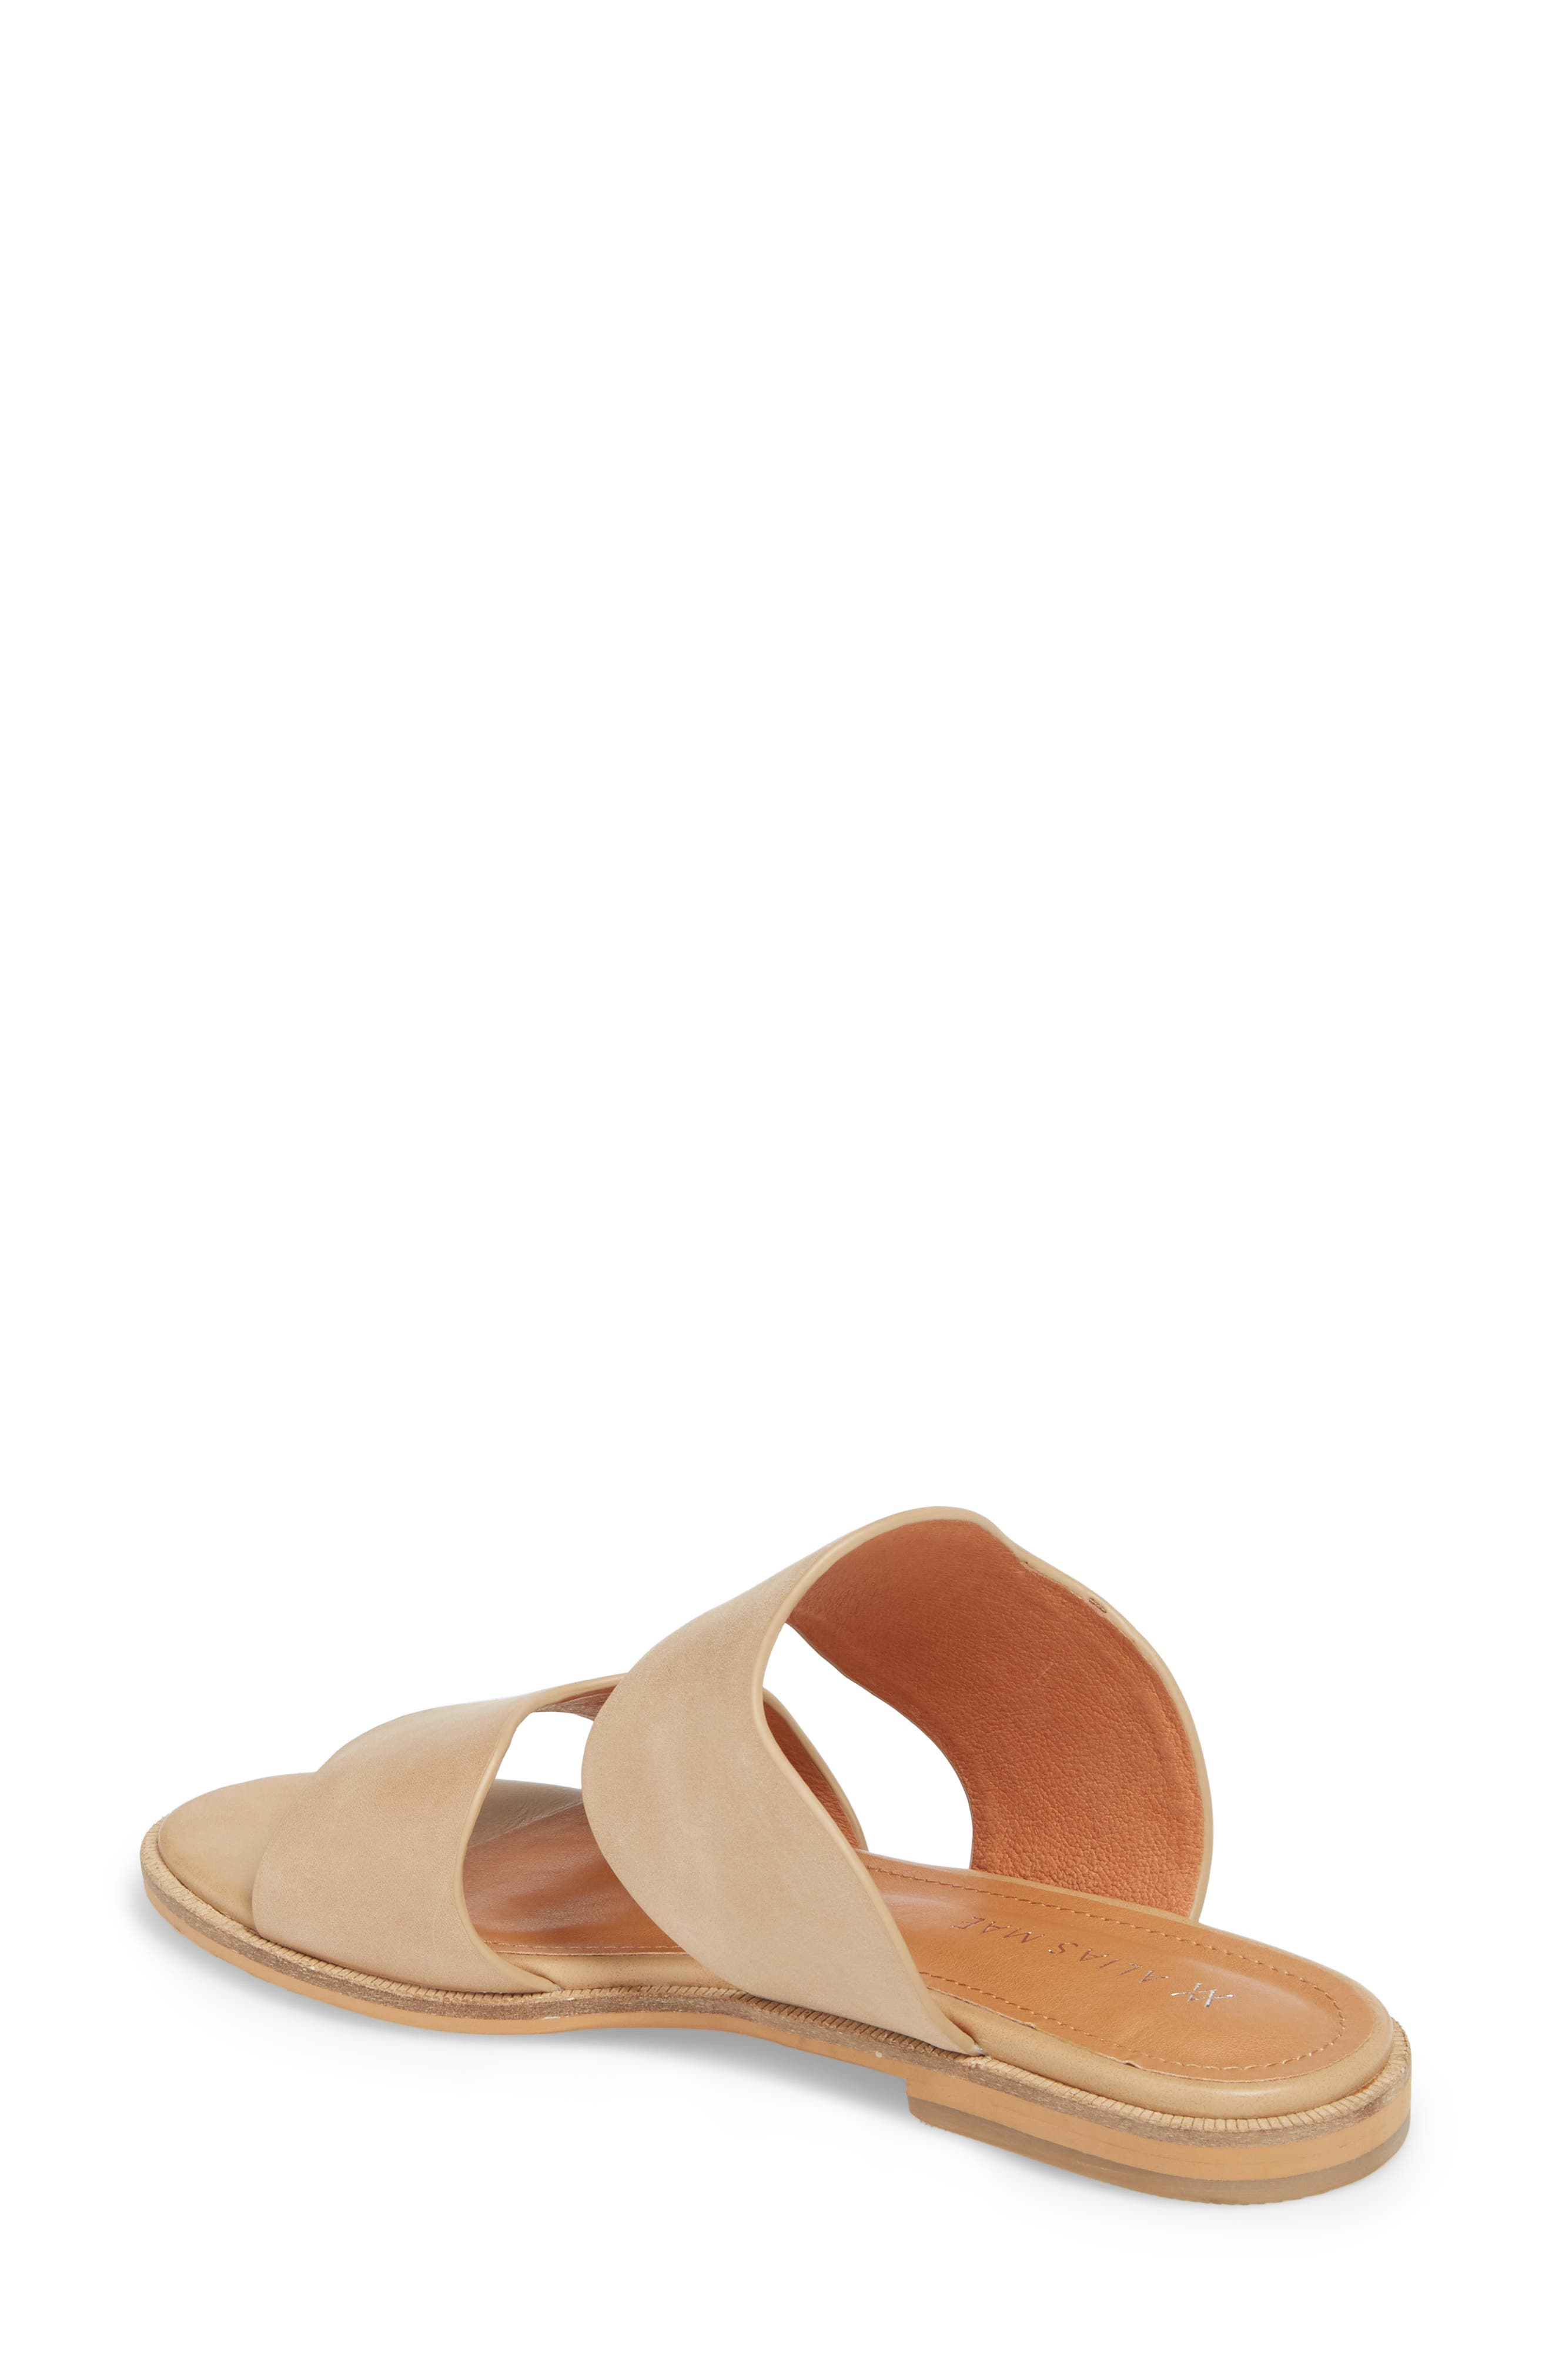 Thermos Scalloped Slide Sandal,                             Alternate thumbnail 2, color,                             Natural Leather